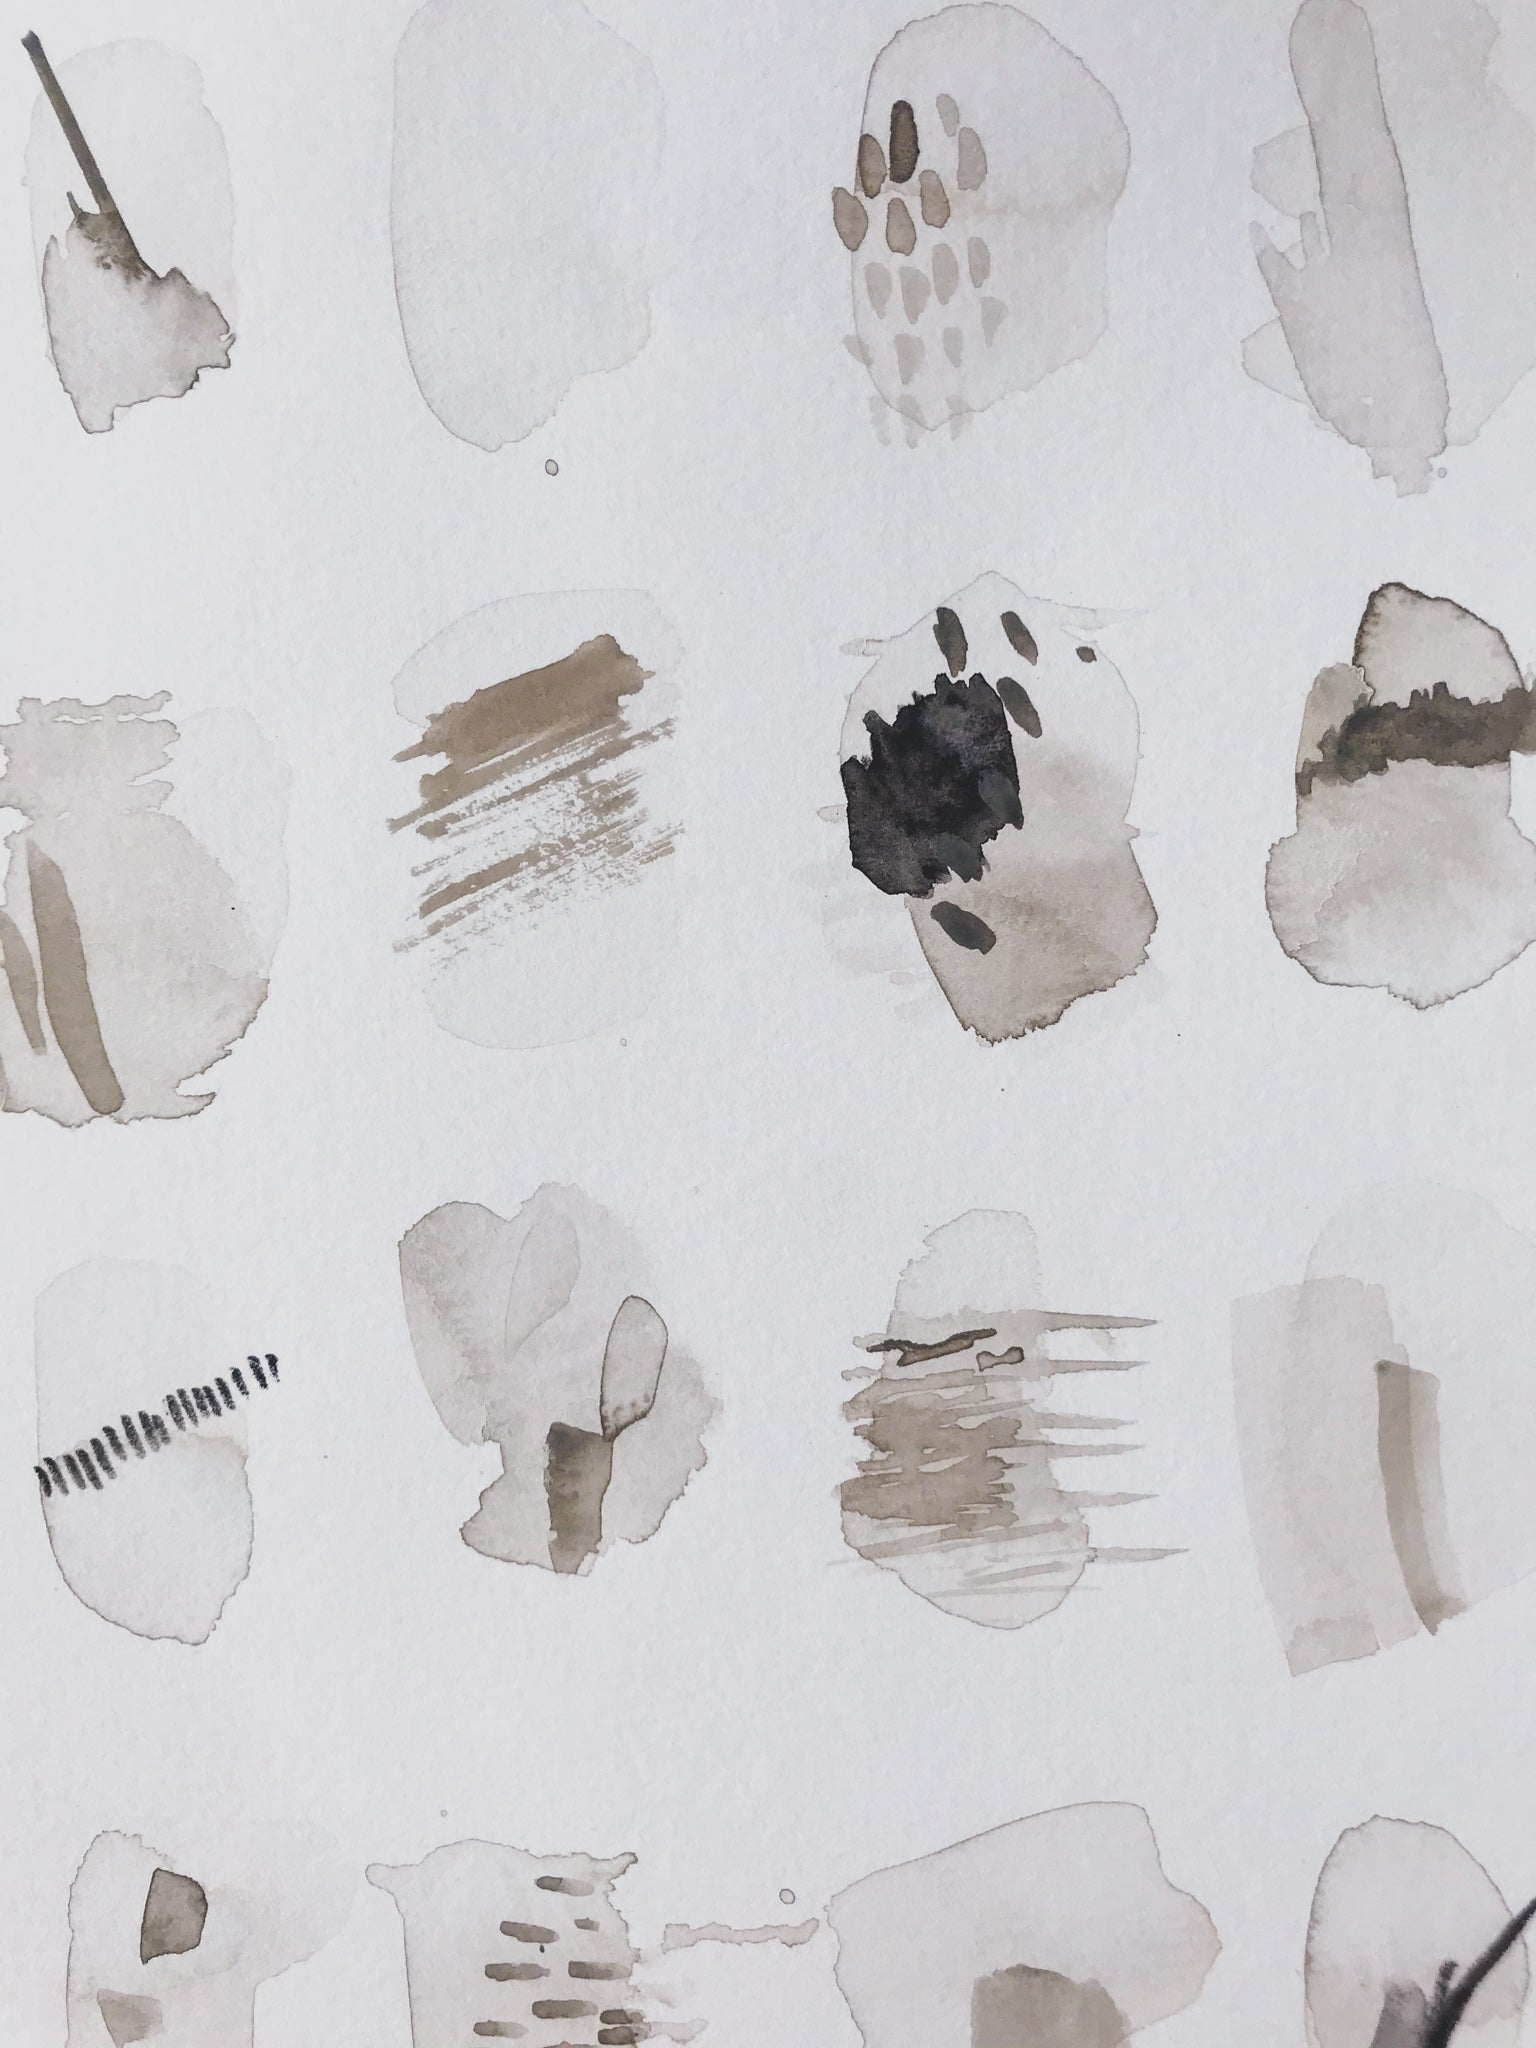 "Detail - Neutral 39, 9x12"". Minimal abstract art by kait dewolff @kaitcreative, $72CAD"